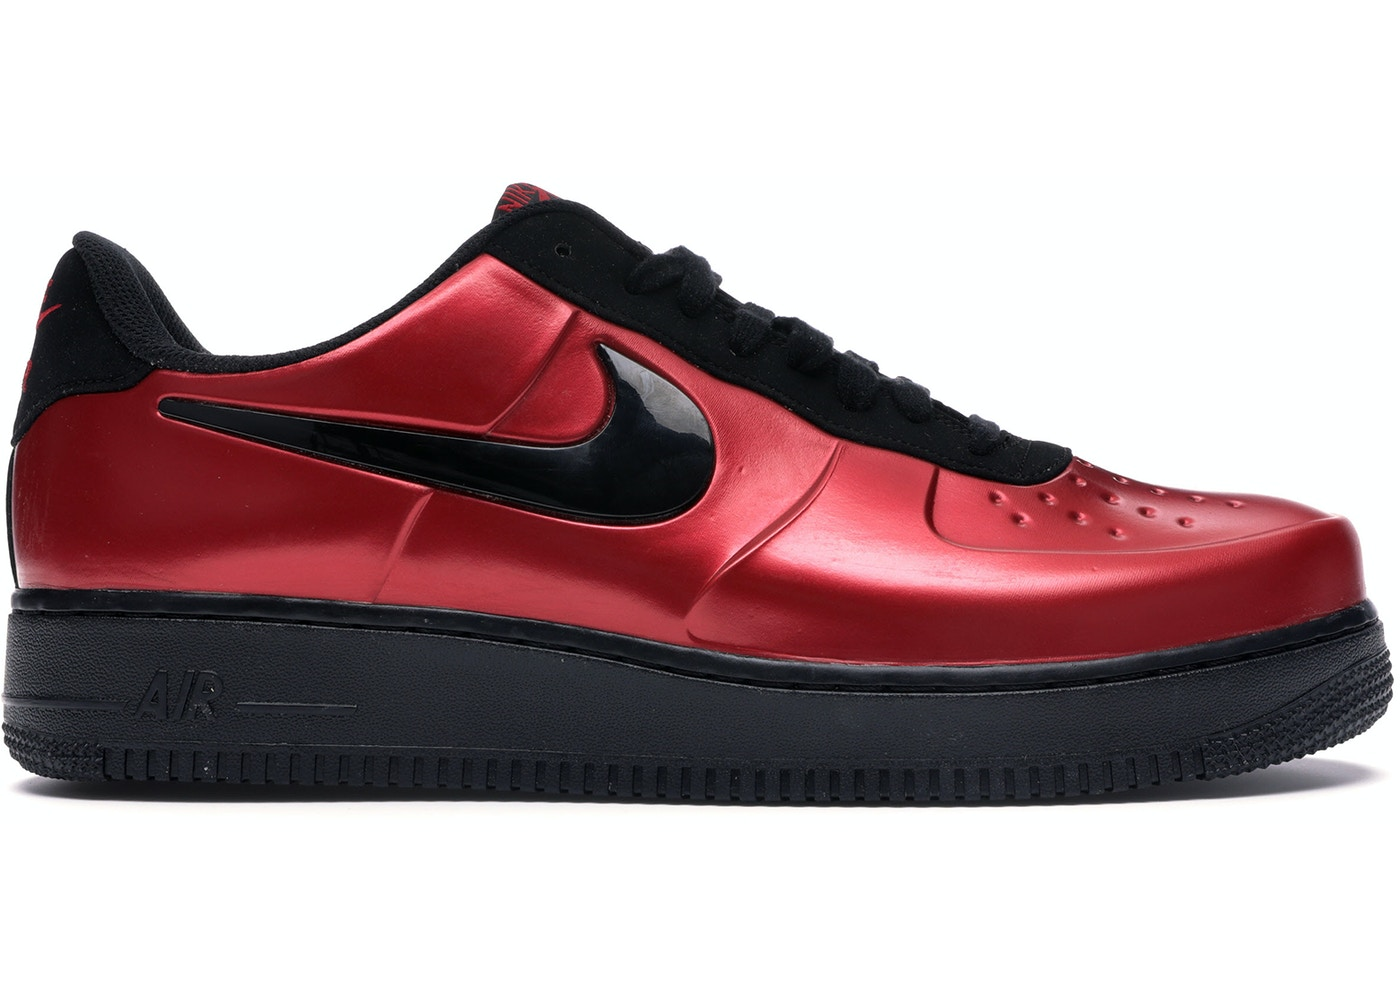 new concept 31a3b 87c22 Air Force 1 Foamposite Pro Cup Gym Red Black